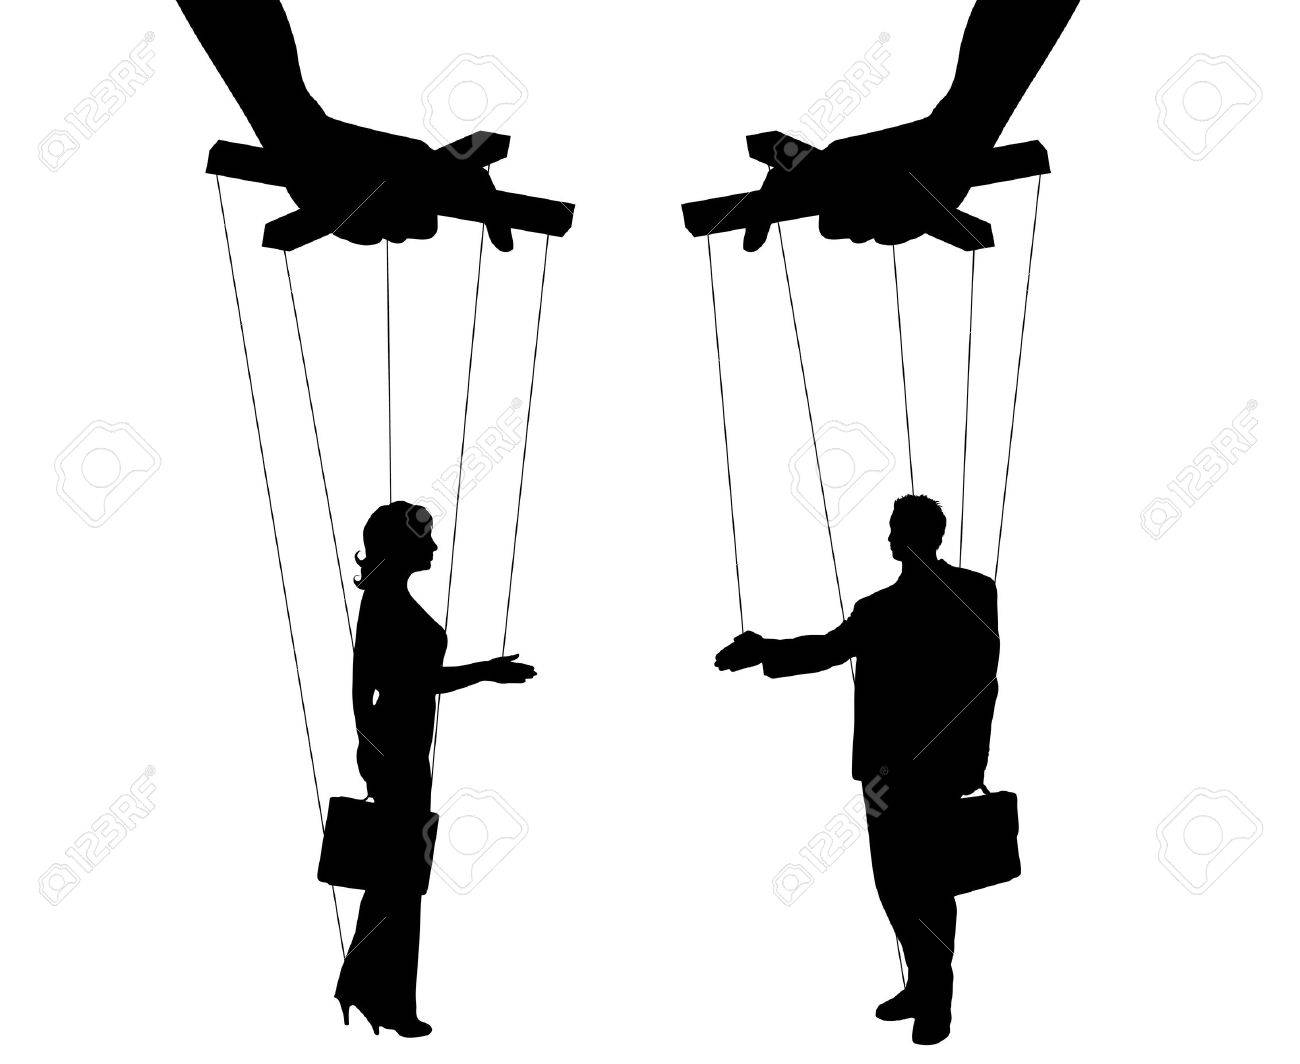 Vector illustration silhouettes man and woman of symbol manipulation - 67919126